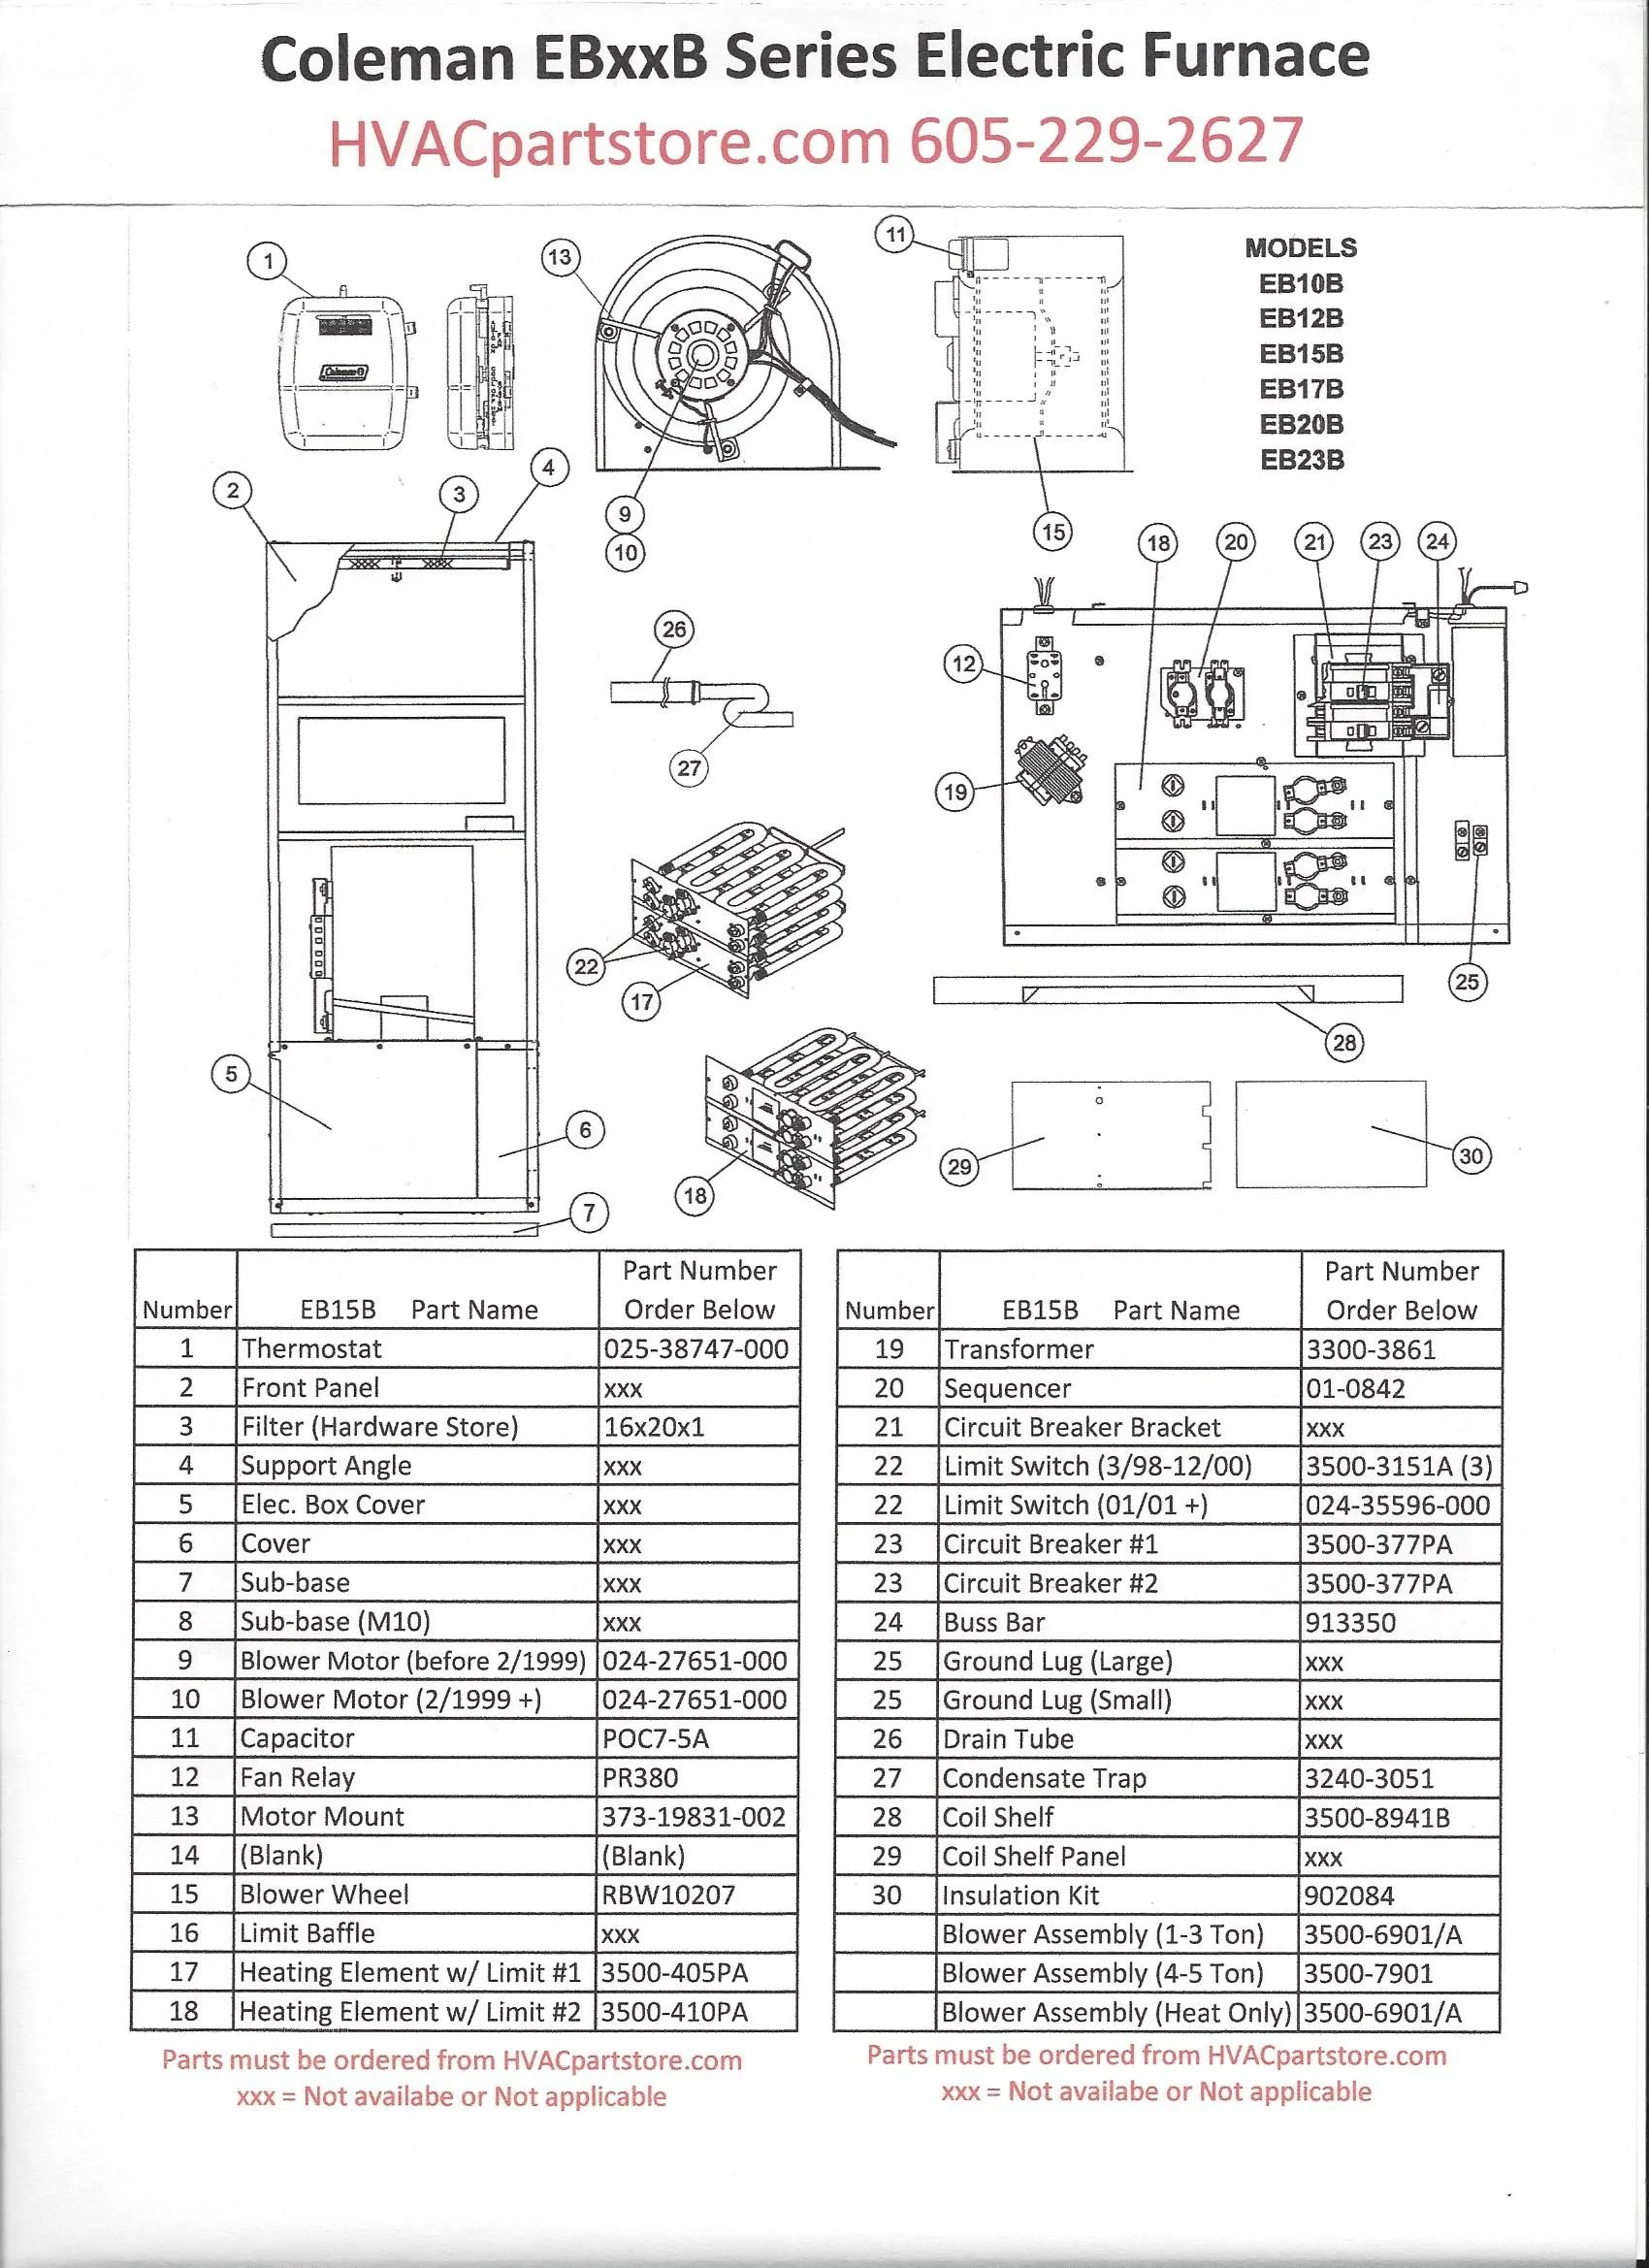 EB15B Coleman Electric Furnace Parts – HVACpartstore